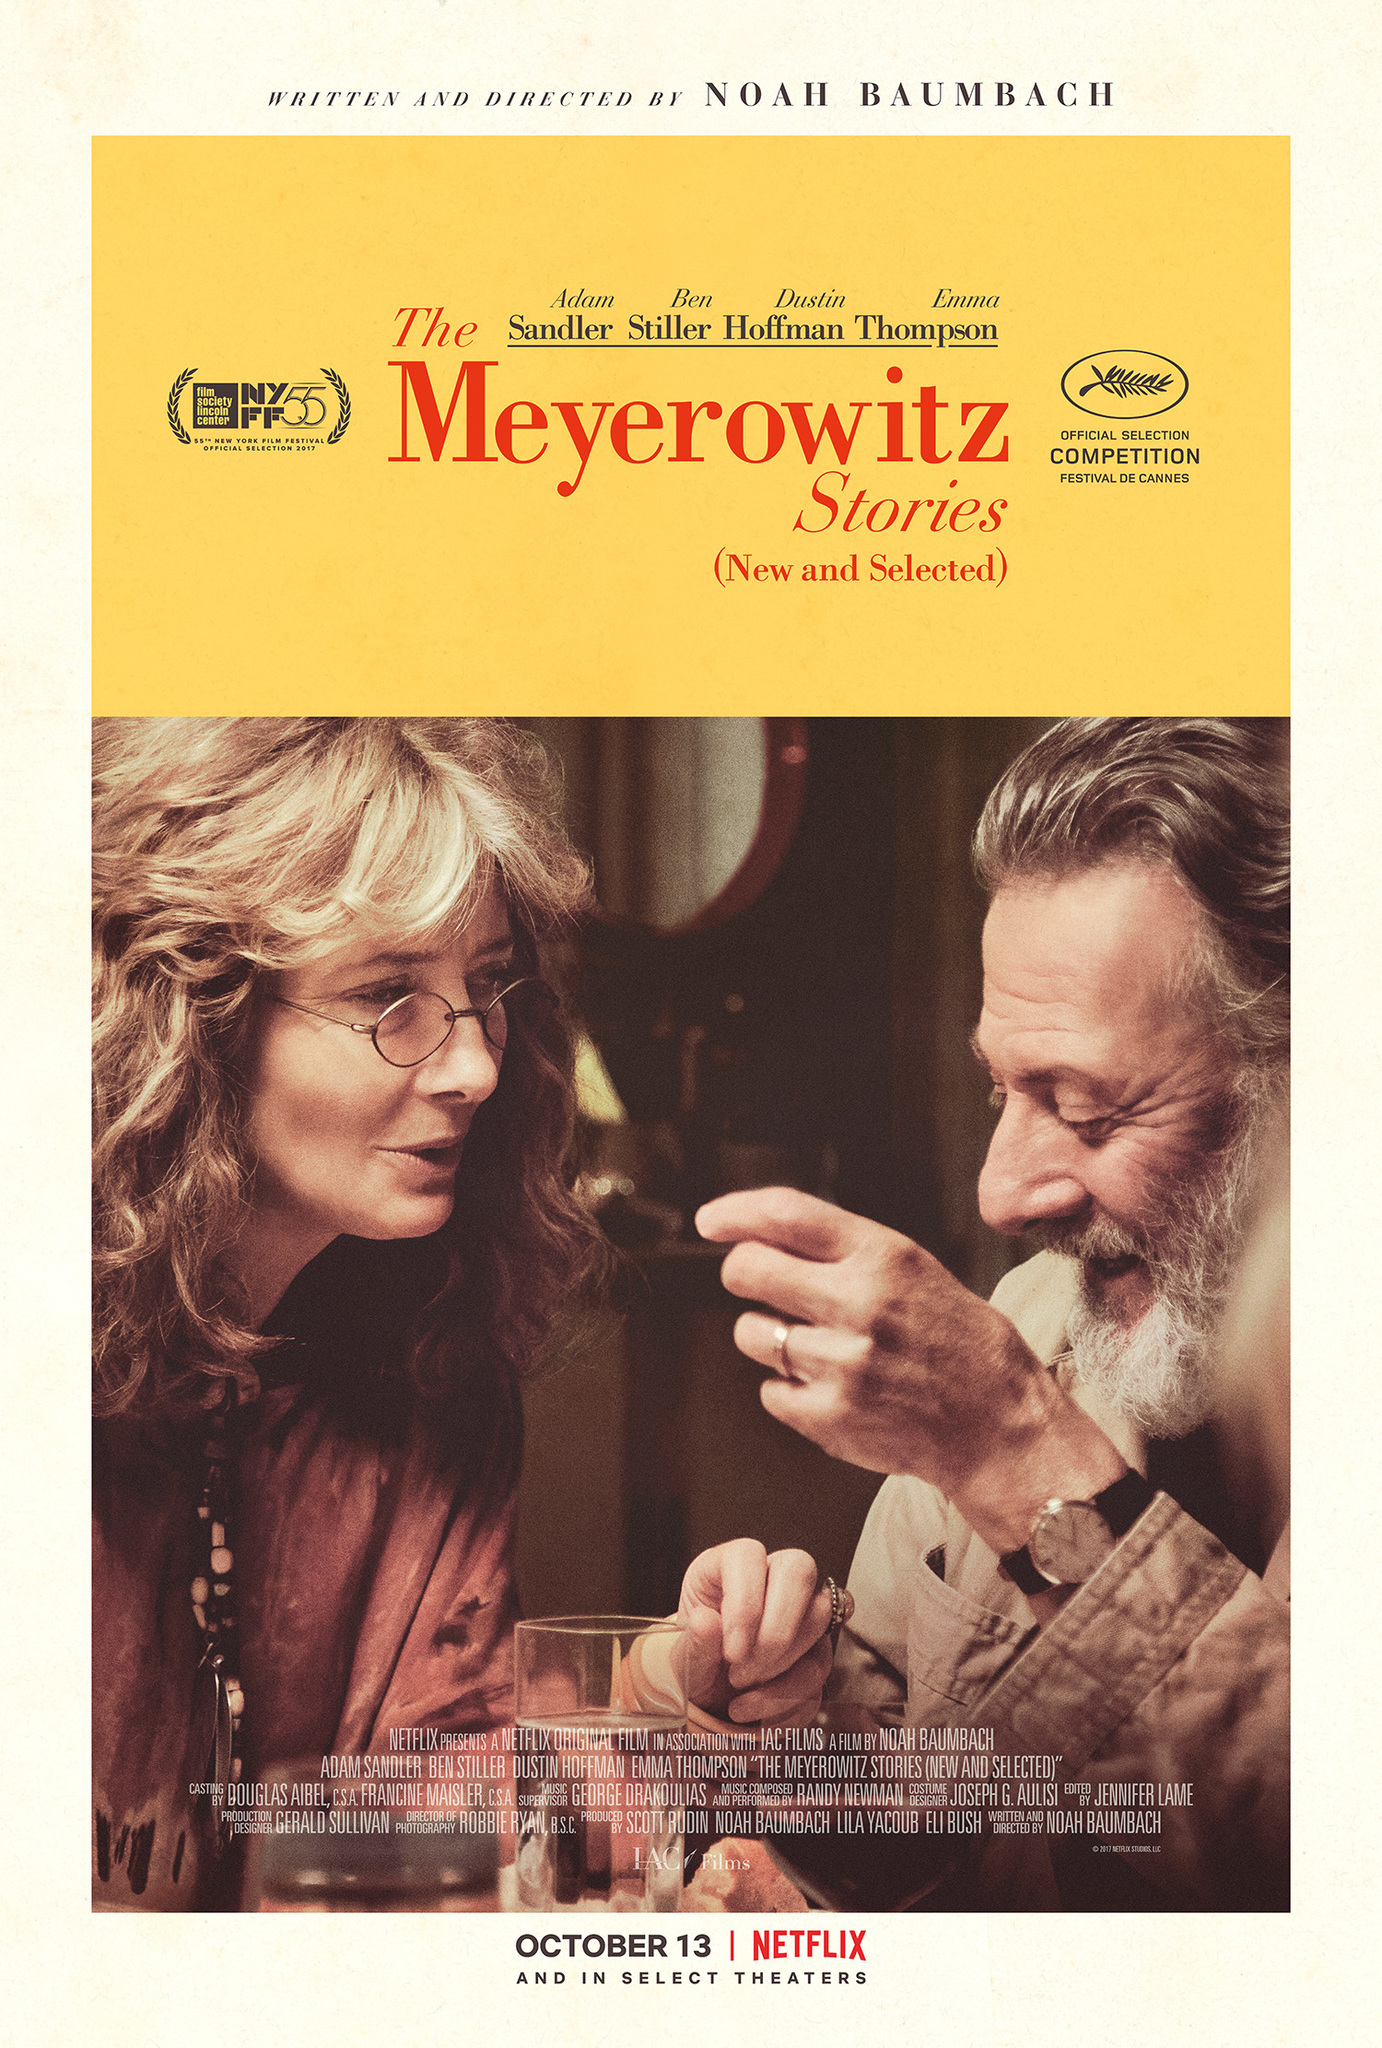 Dustin Hoffman and Emma Thompson in The Meyerowitz Stories (New and Selected) (2017)